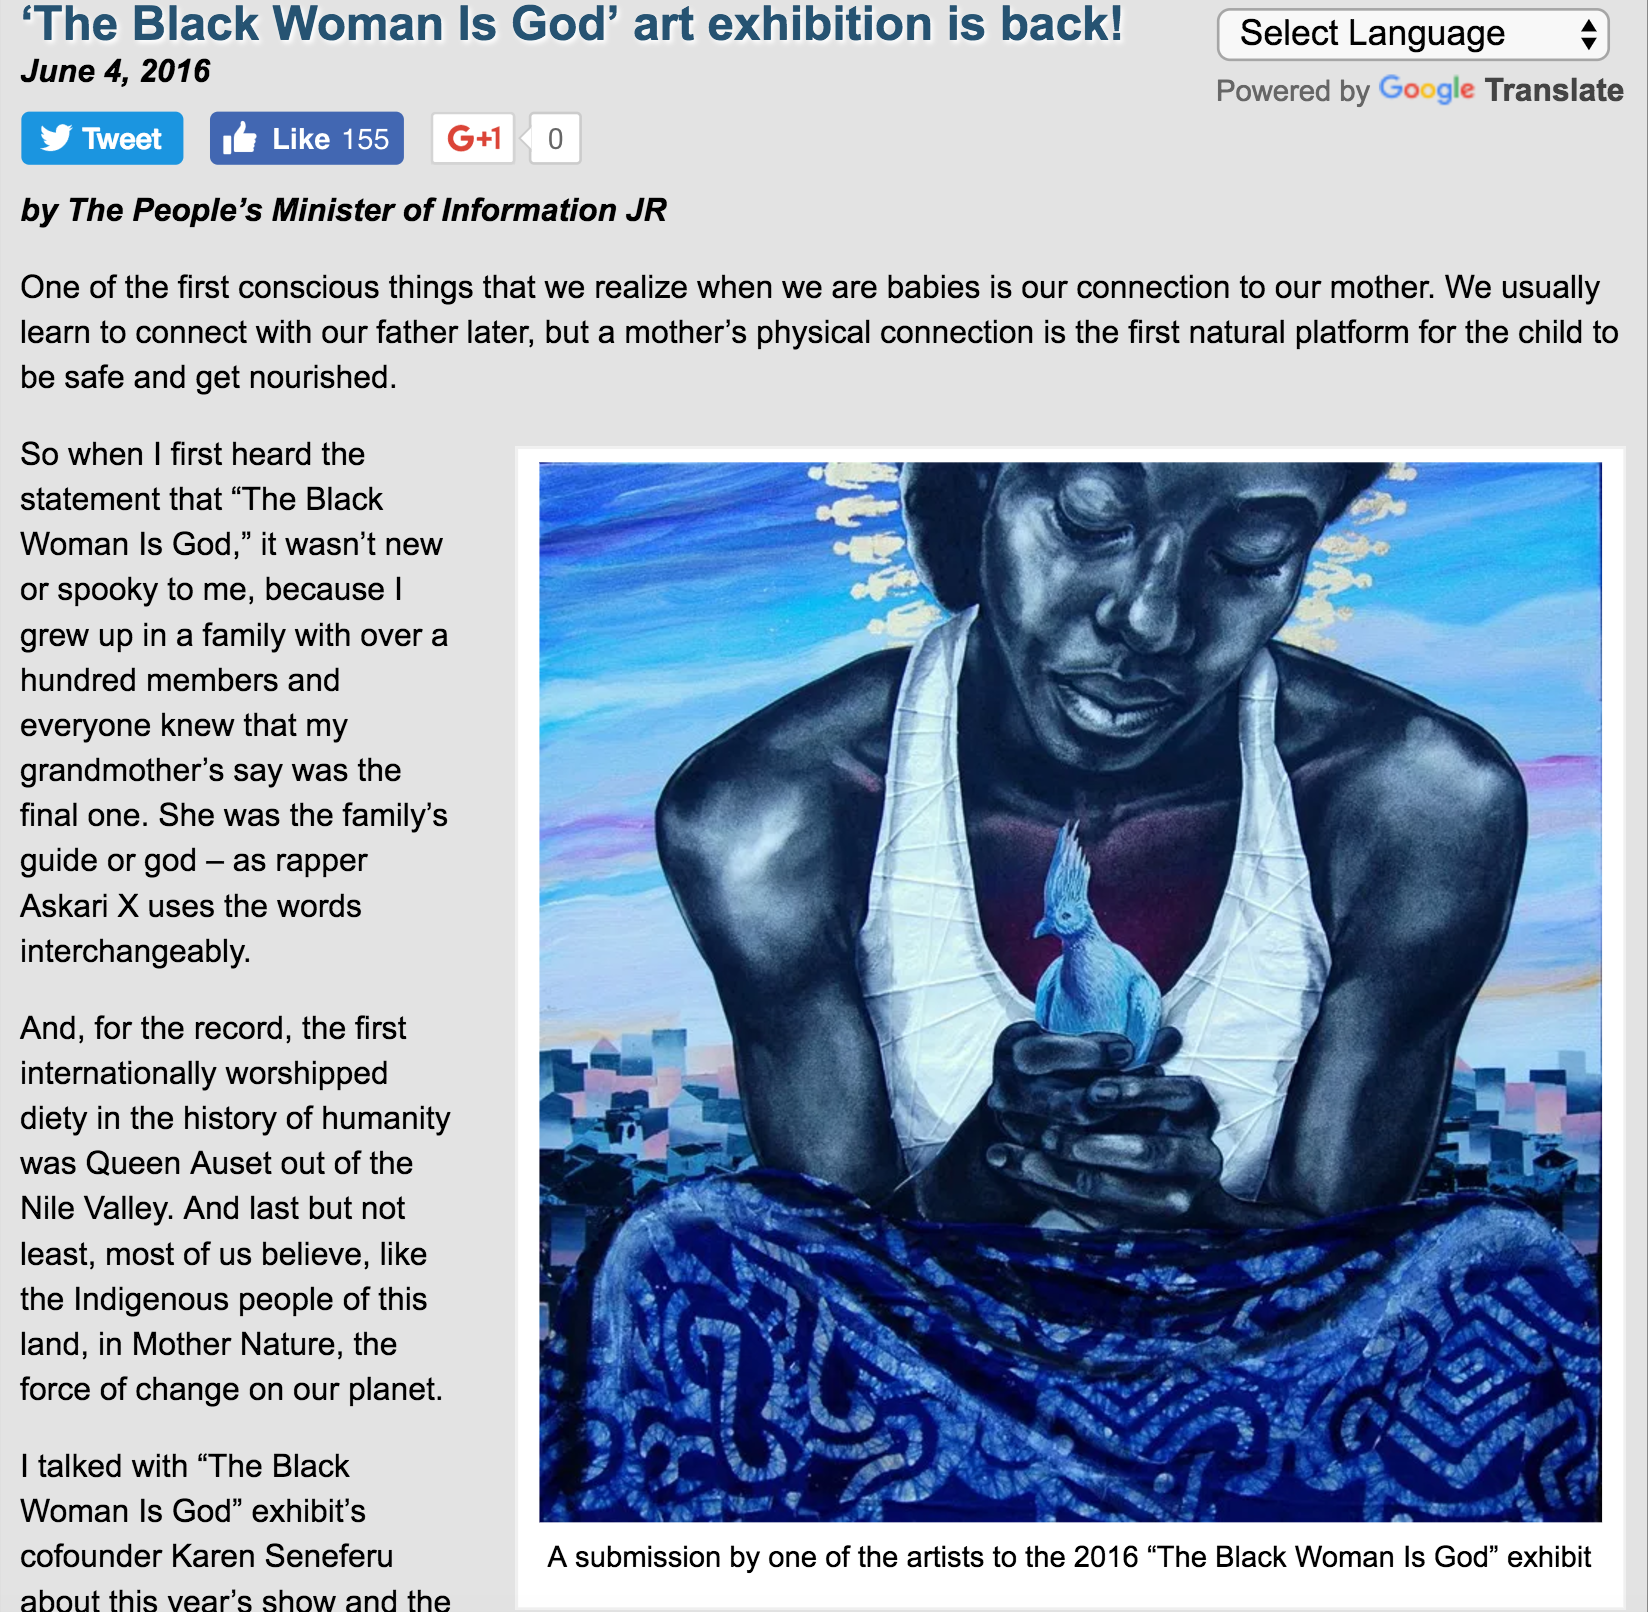 'The Black Woman Is God' art exhibition is back!